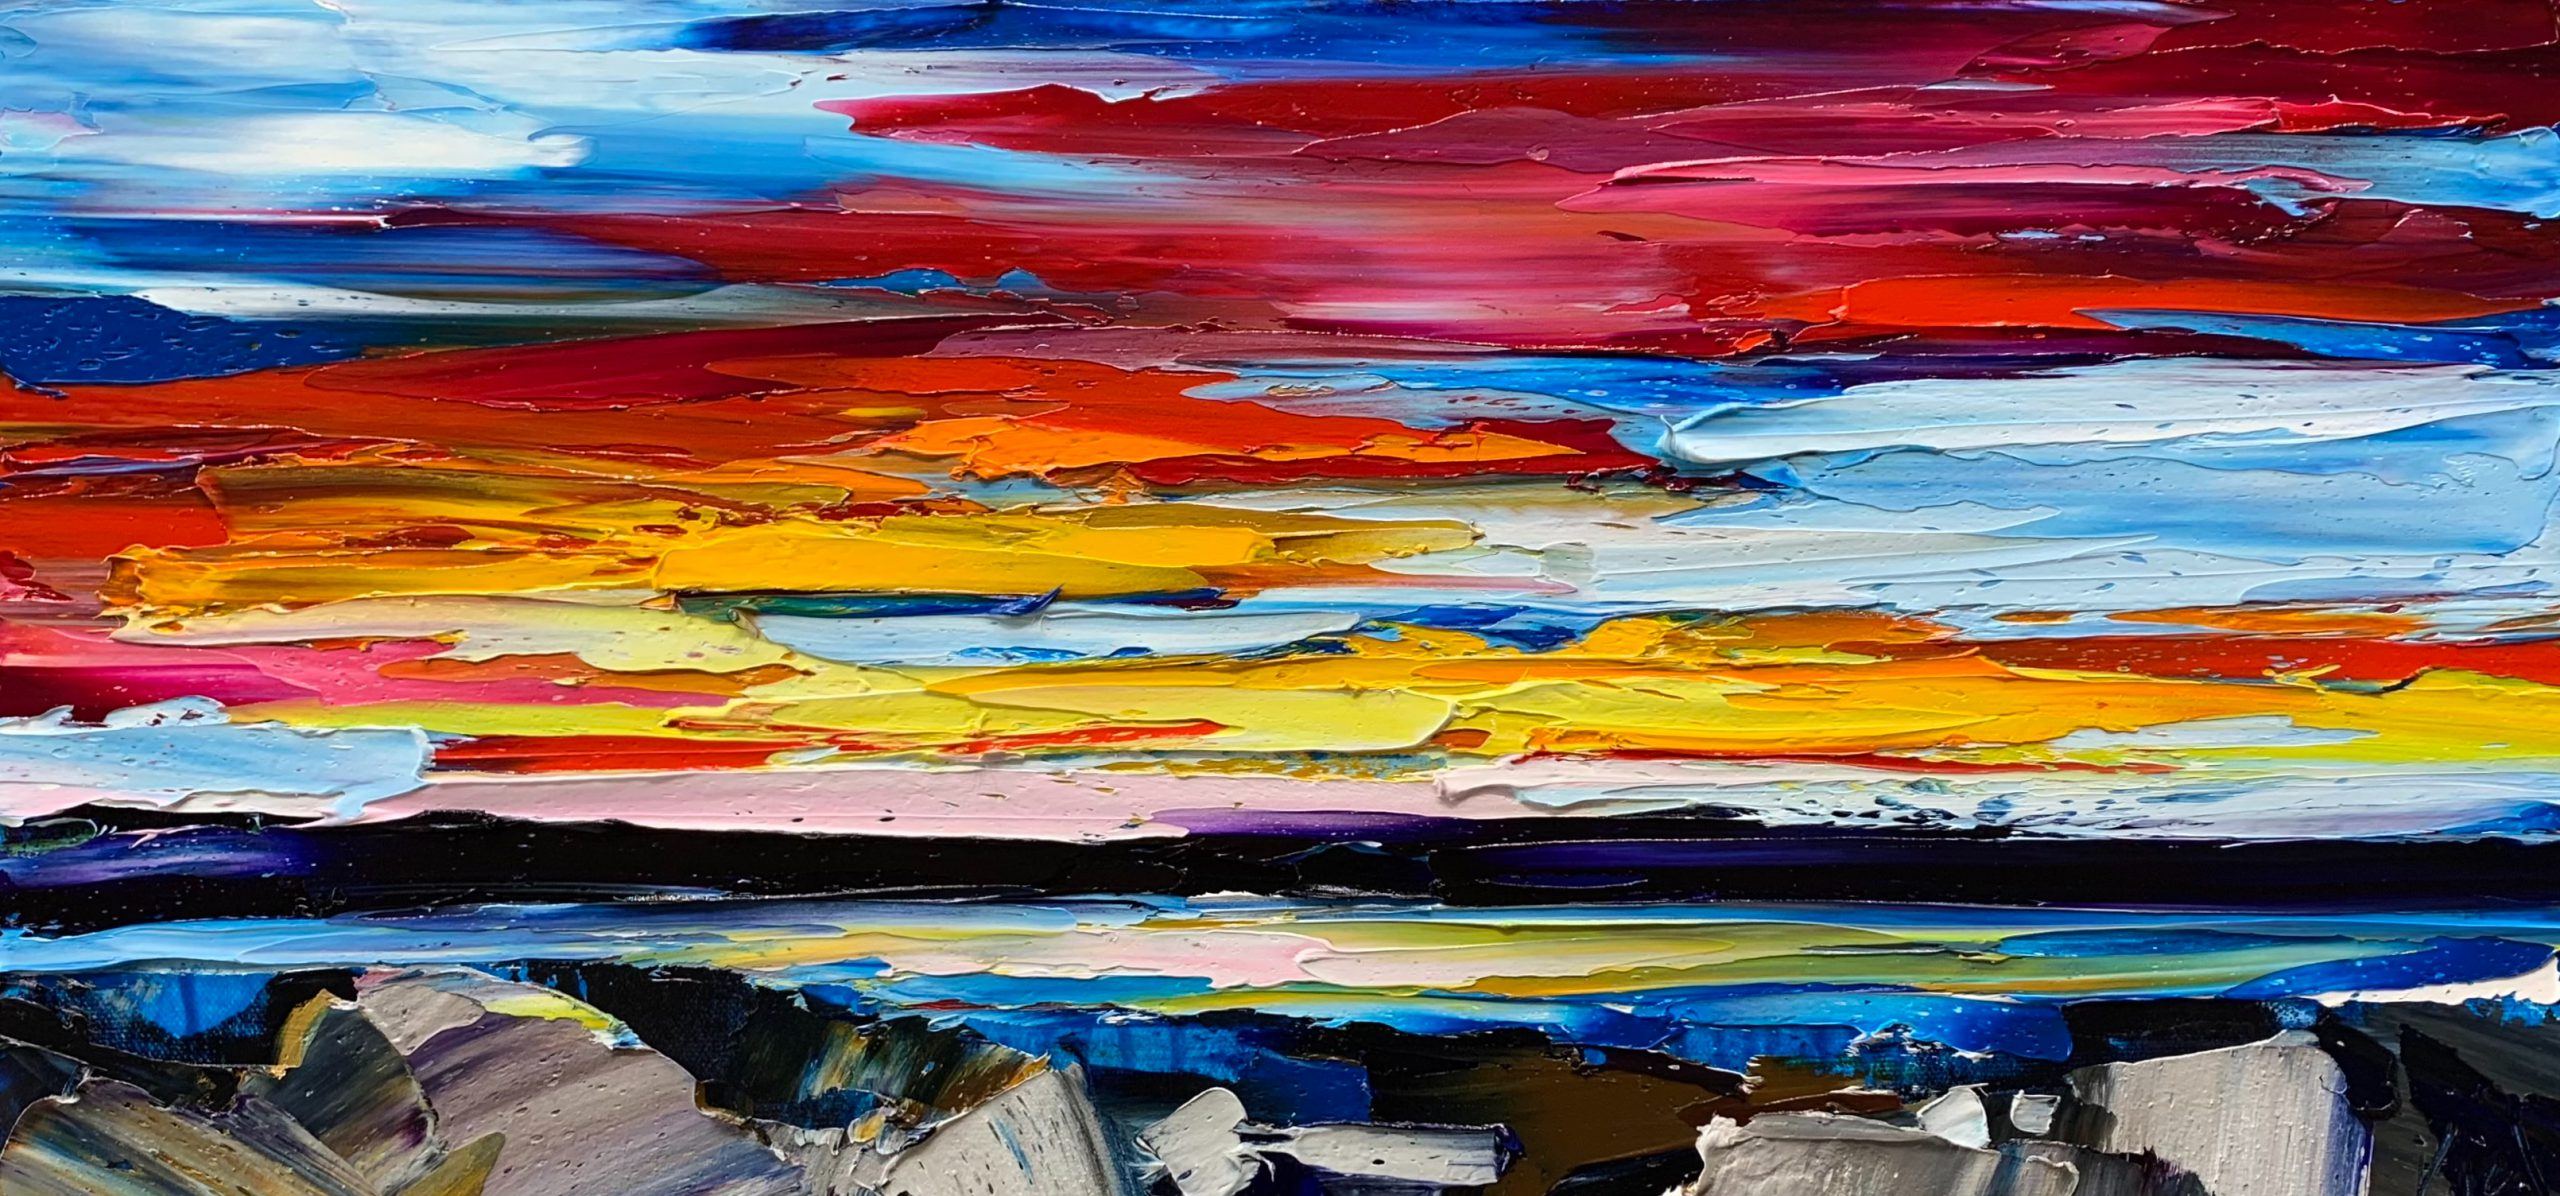 When the Sun goes Down Again, oil landscape painting by Kimberly Kiel   Effusion Art Gallery + Cast Glass Studio, Invermere BC